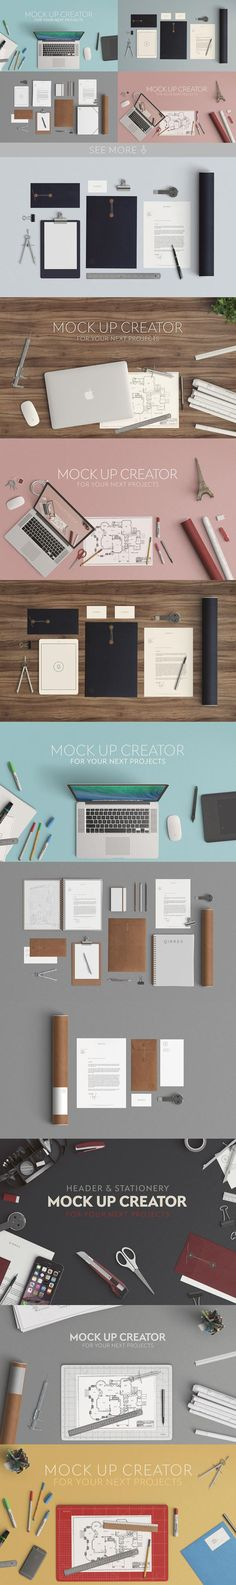 The perfect mock up creater for your next design and identity projects.